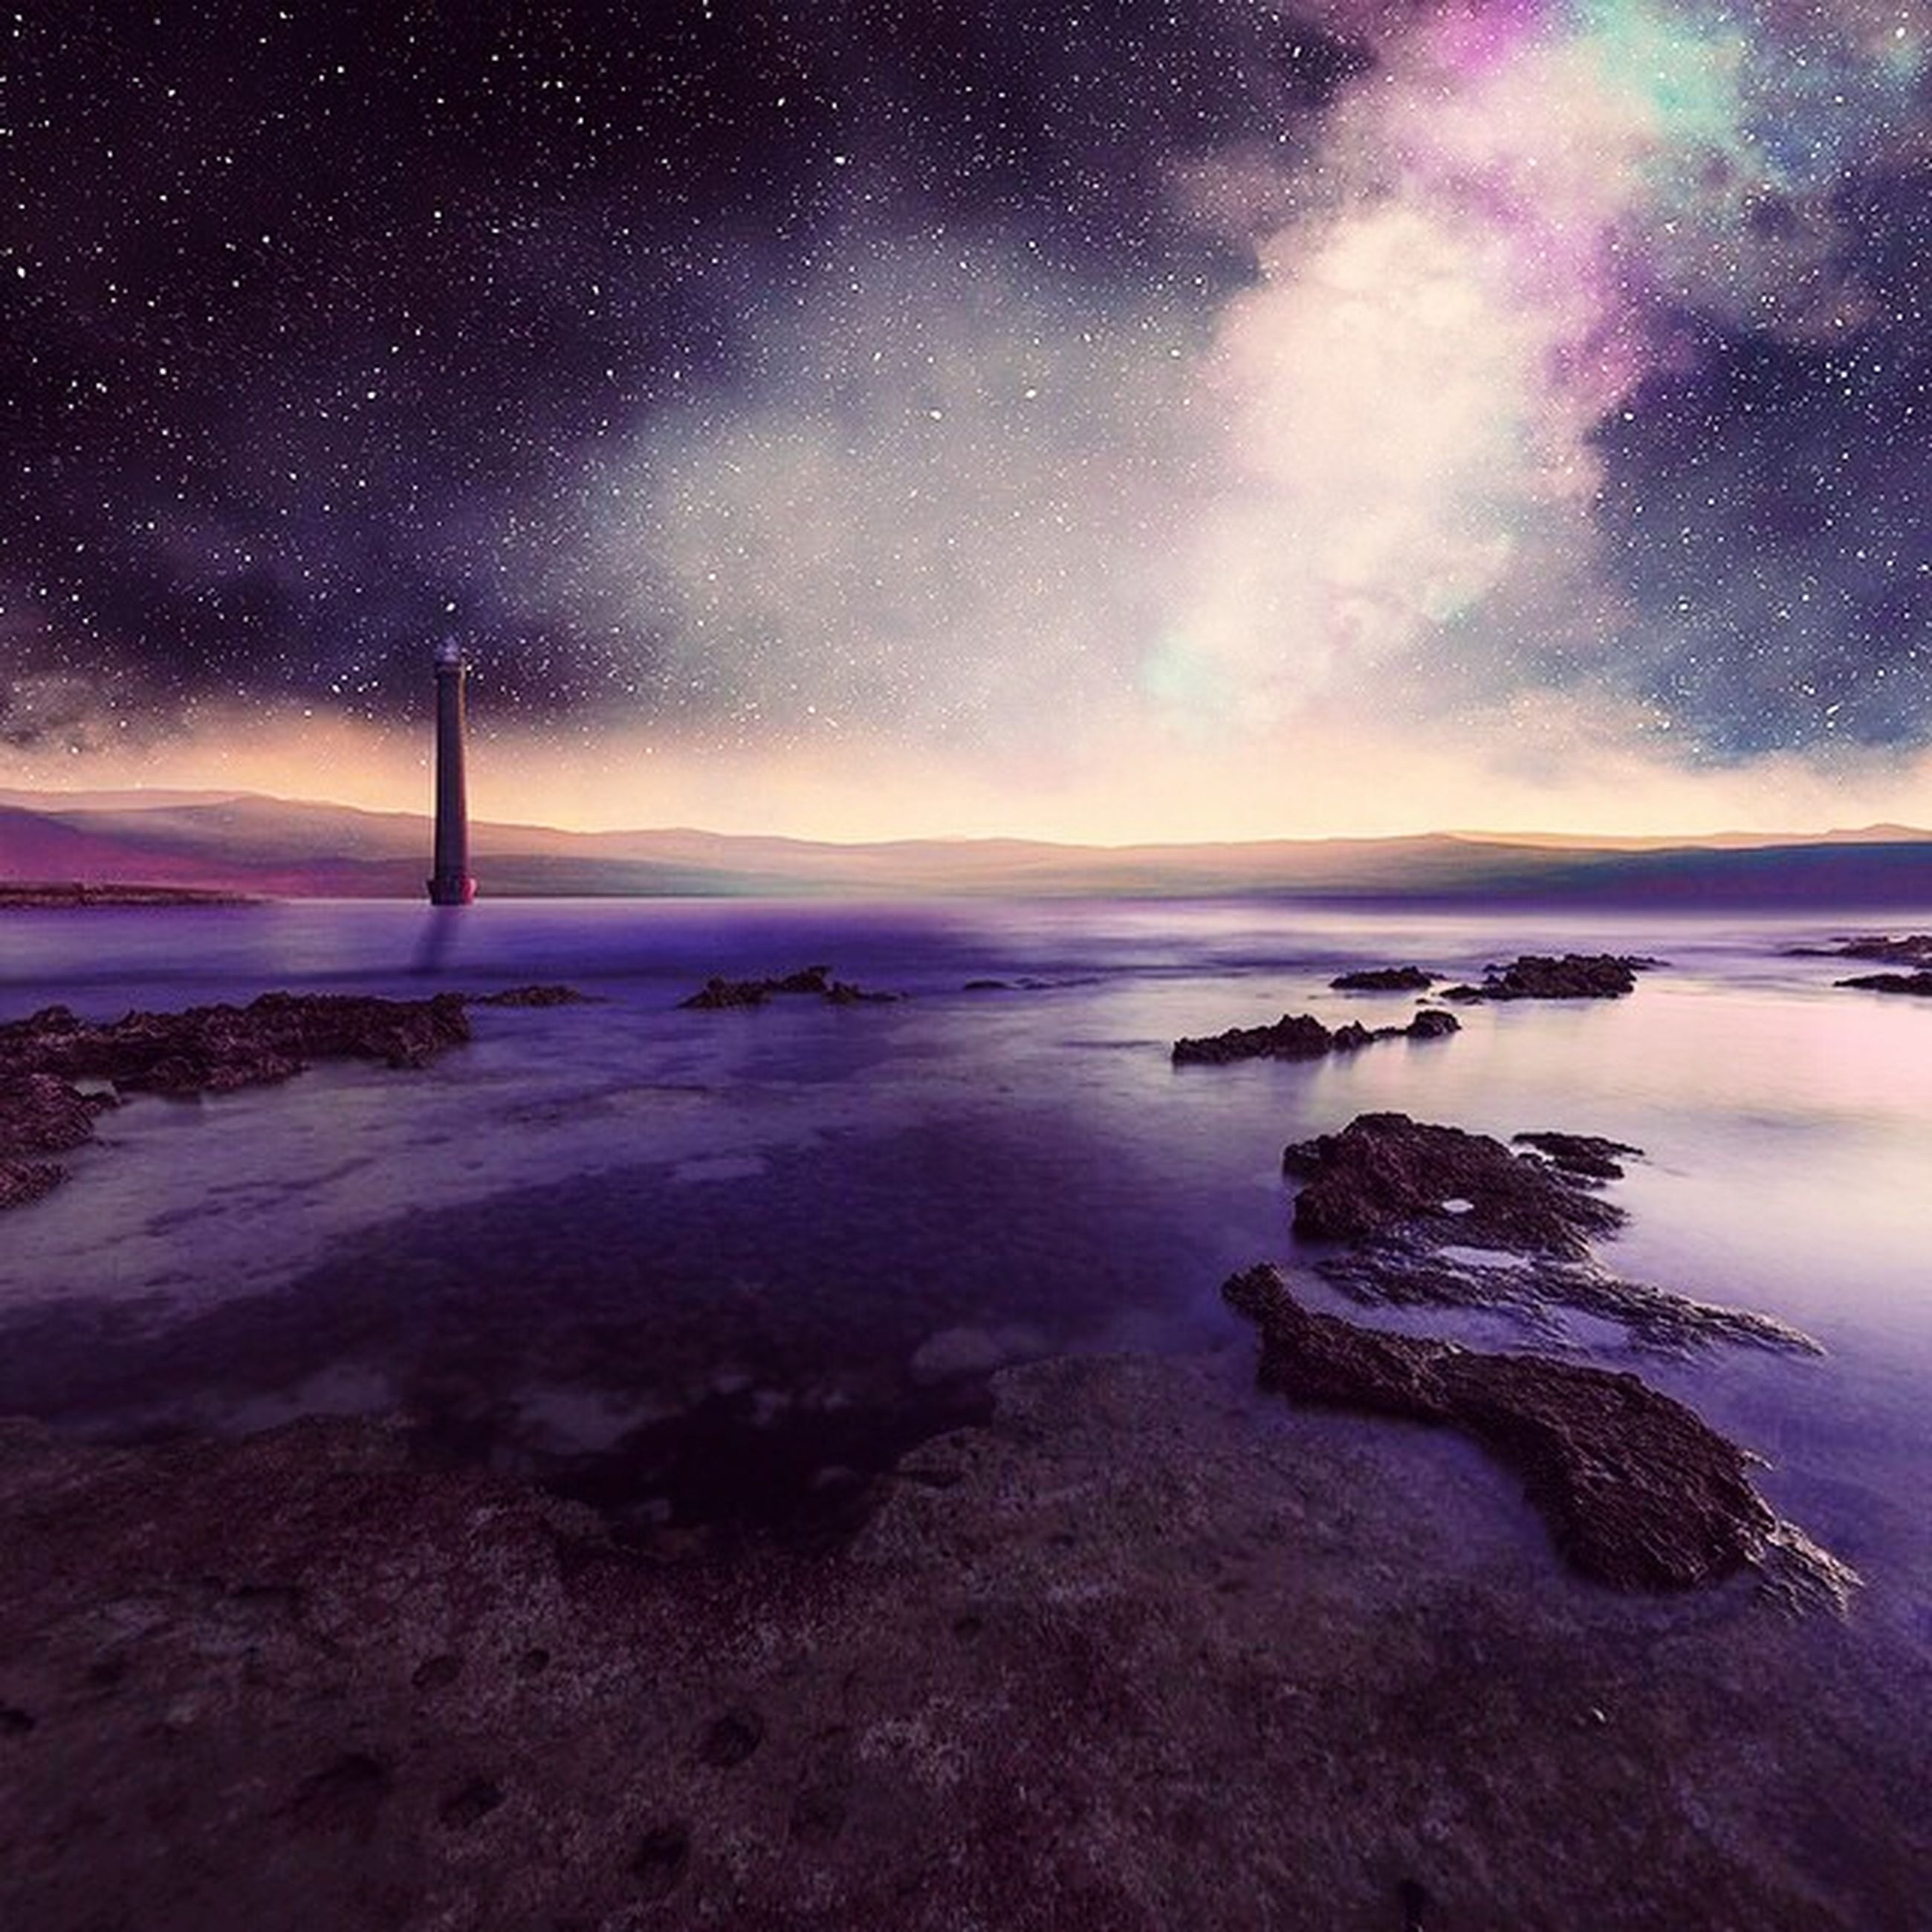 tranquil scene, scenics, tranquility, water, beauty in nature, sky, night, nature, sea, star - space, idyllic, dusk, astronomy, majestic, non-urban scene, star field, reflection, outdoors, no people, silhouette